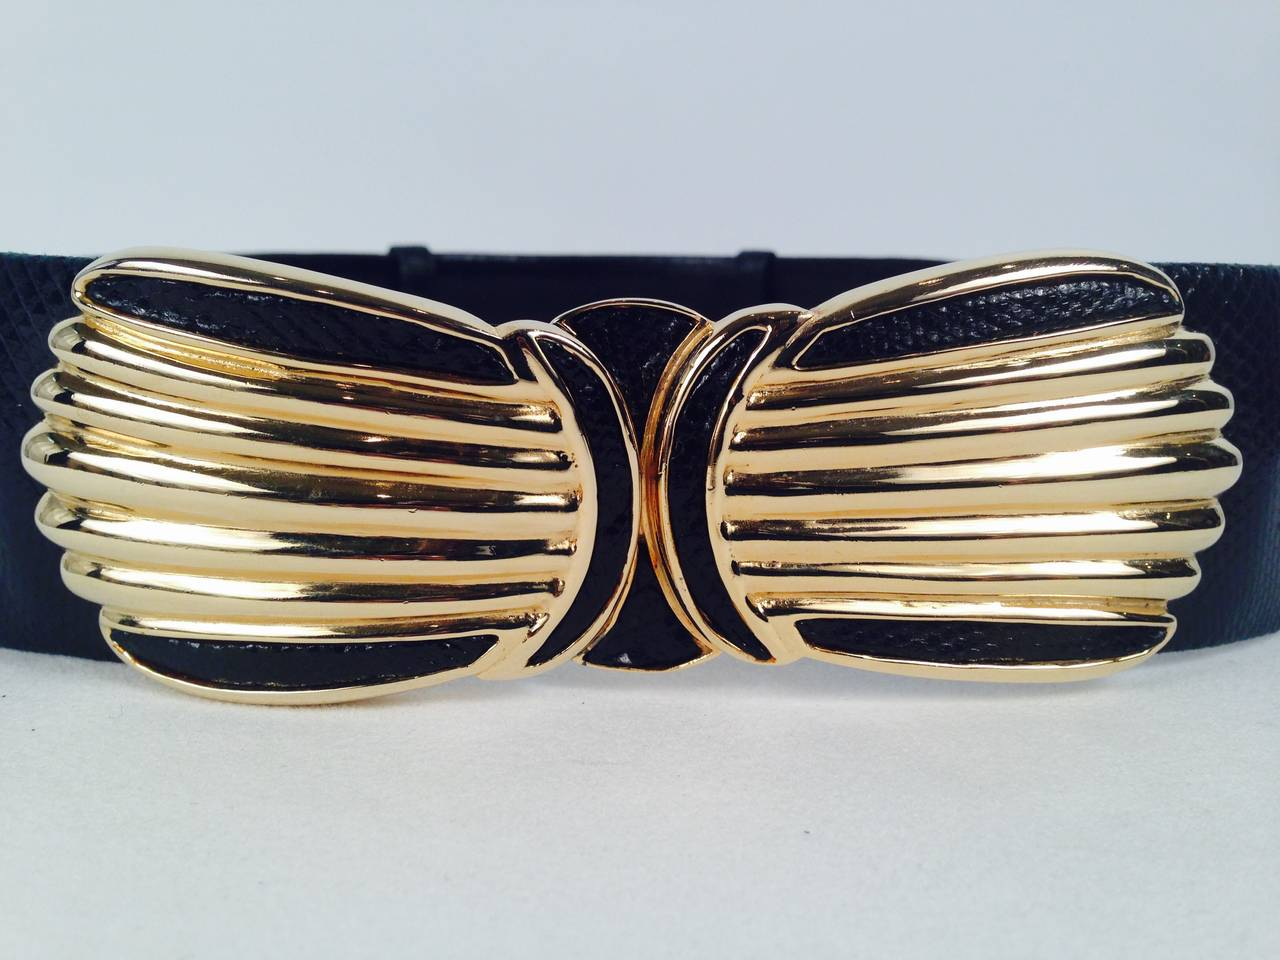 Cinch your waist with this unforgettable belt by Judith Leiber!  More than just the